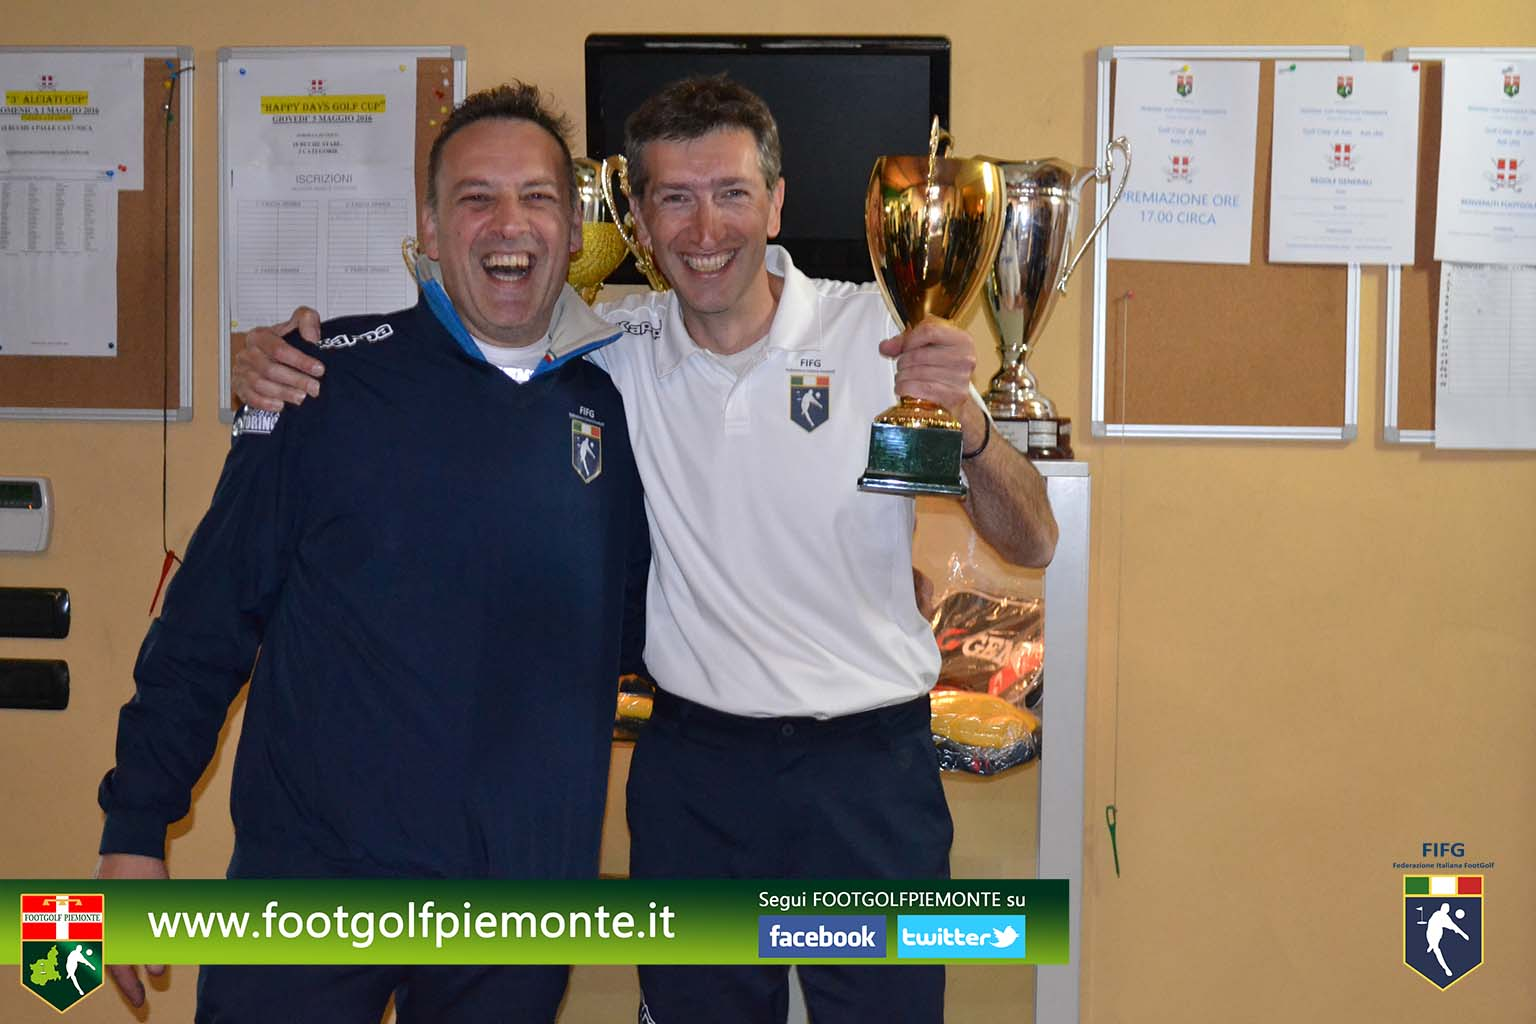 FOTO 9 Regions' Cup Footgolf Piemonte 2016 Golf Città di Asti (At) 30apr16-119